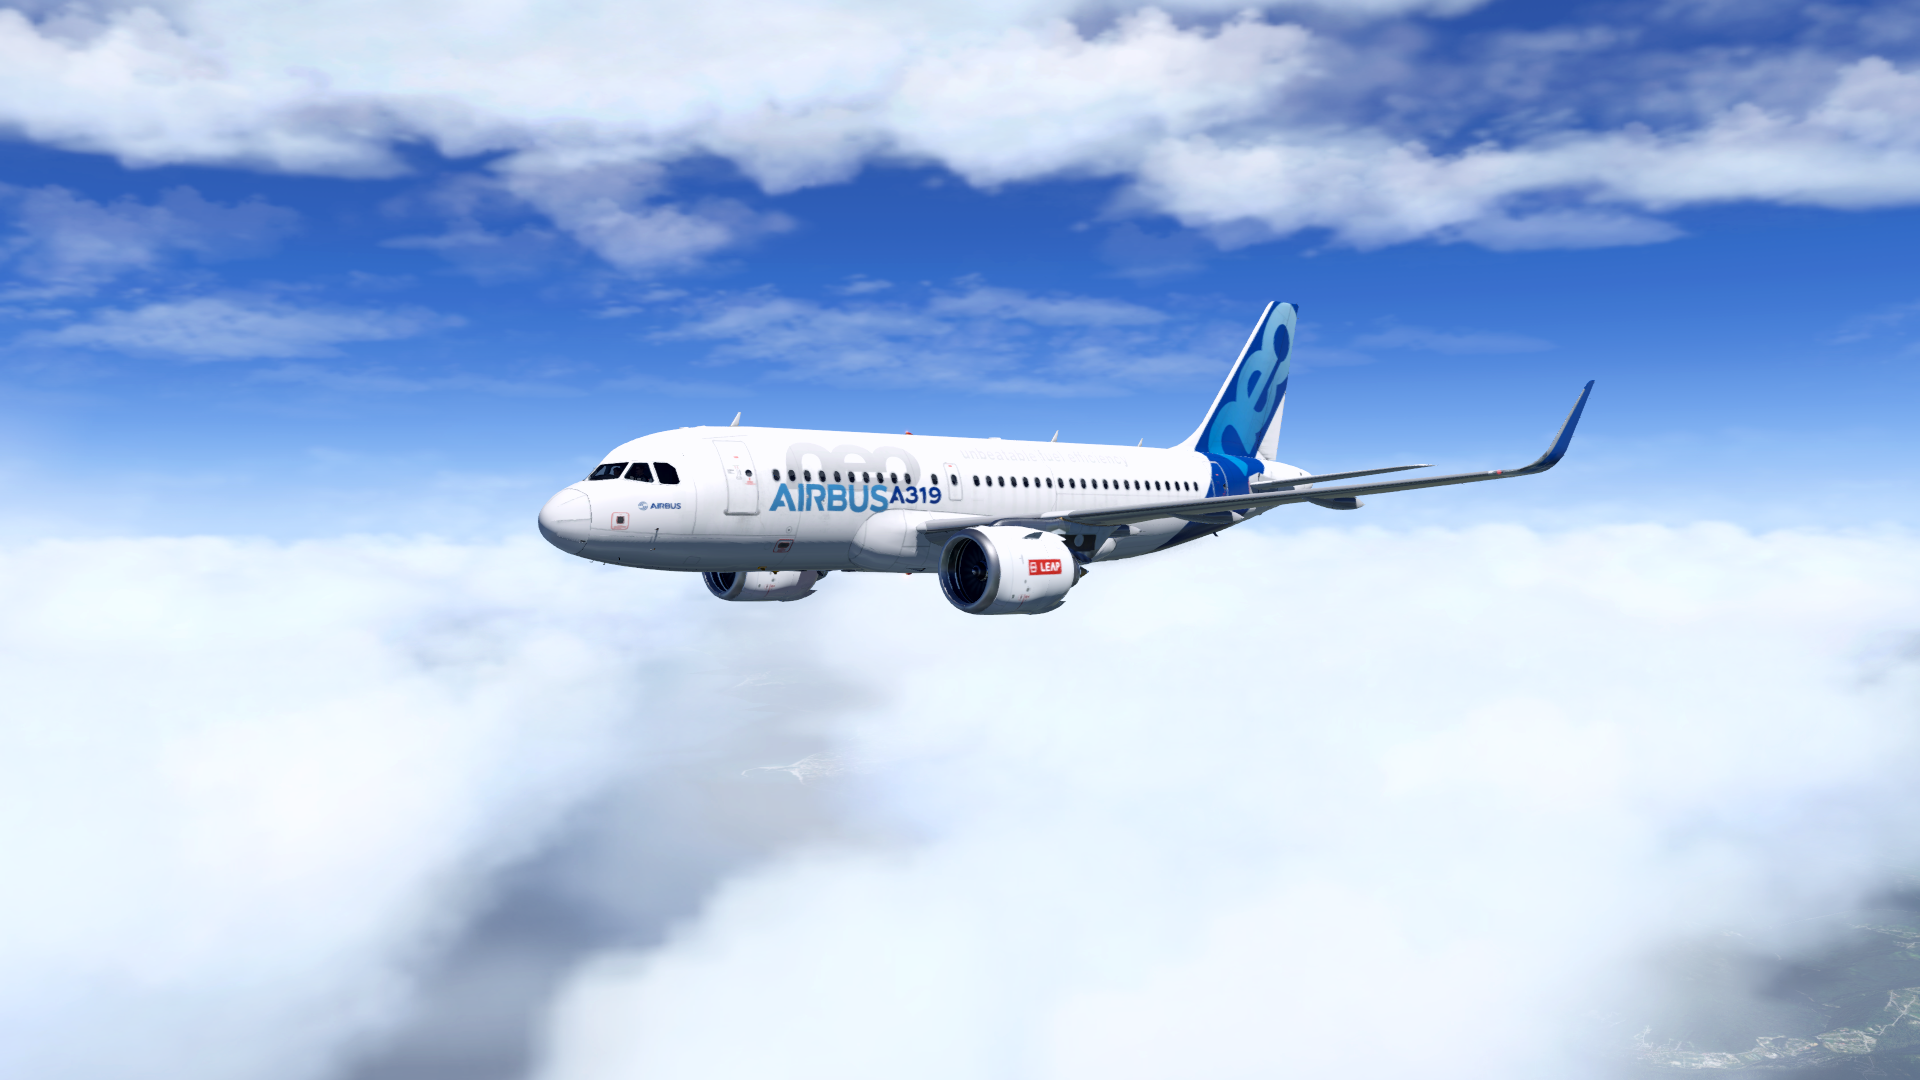 a319 - 2020-06-22 14.53.44.png